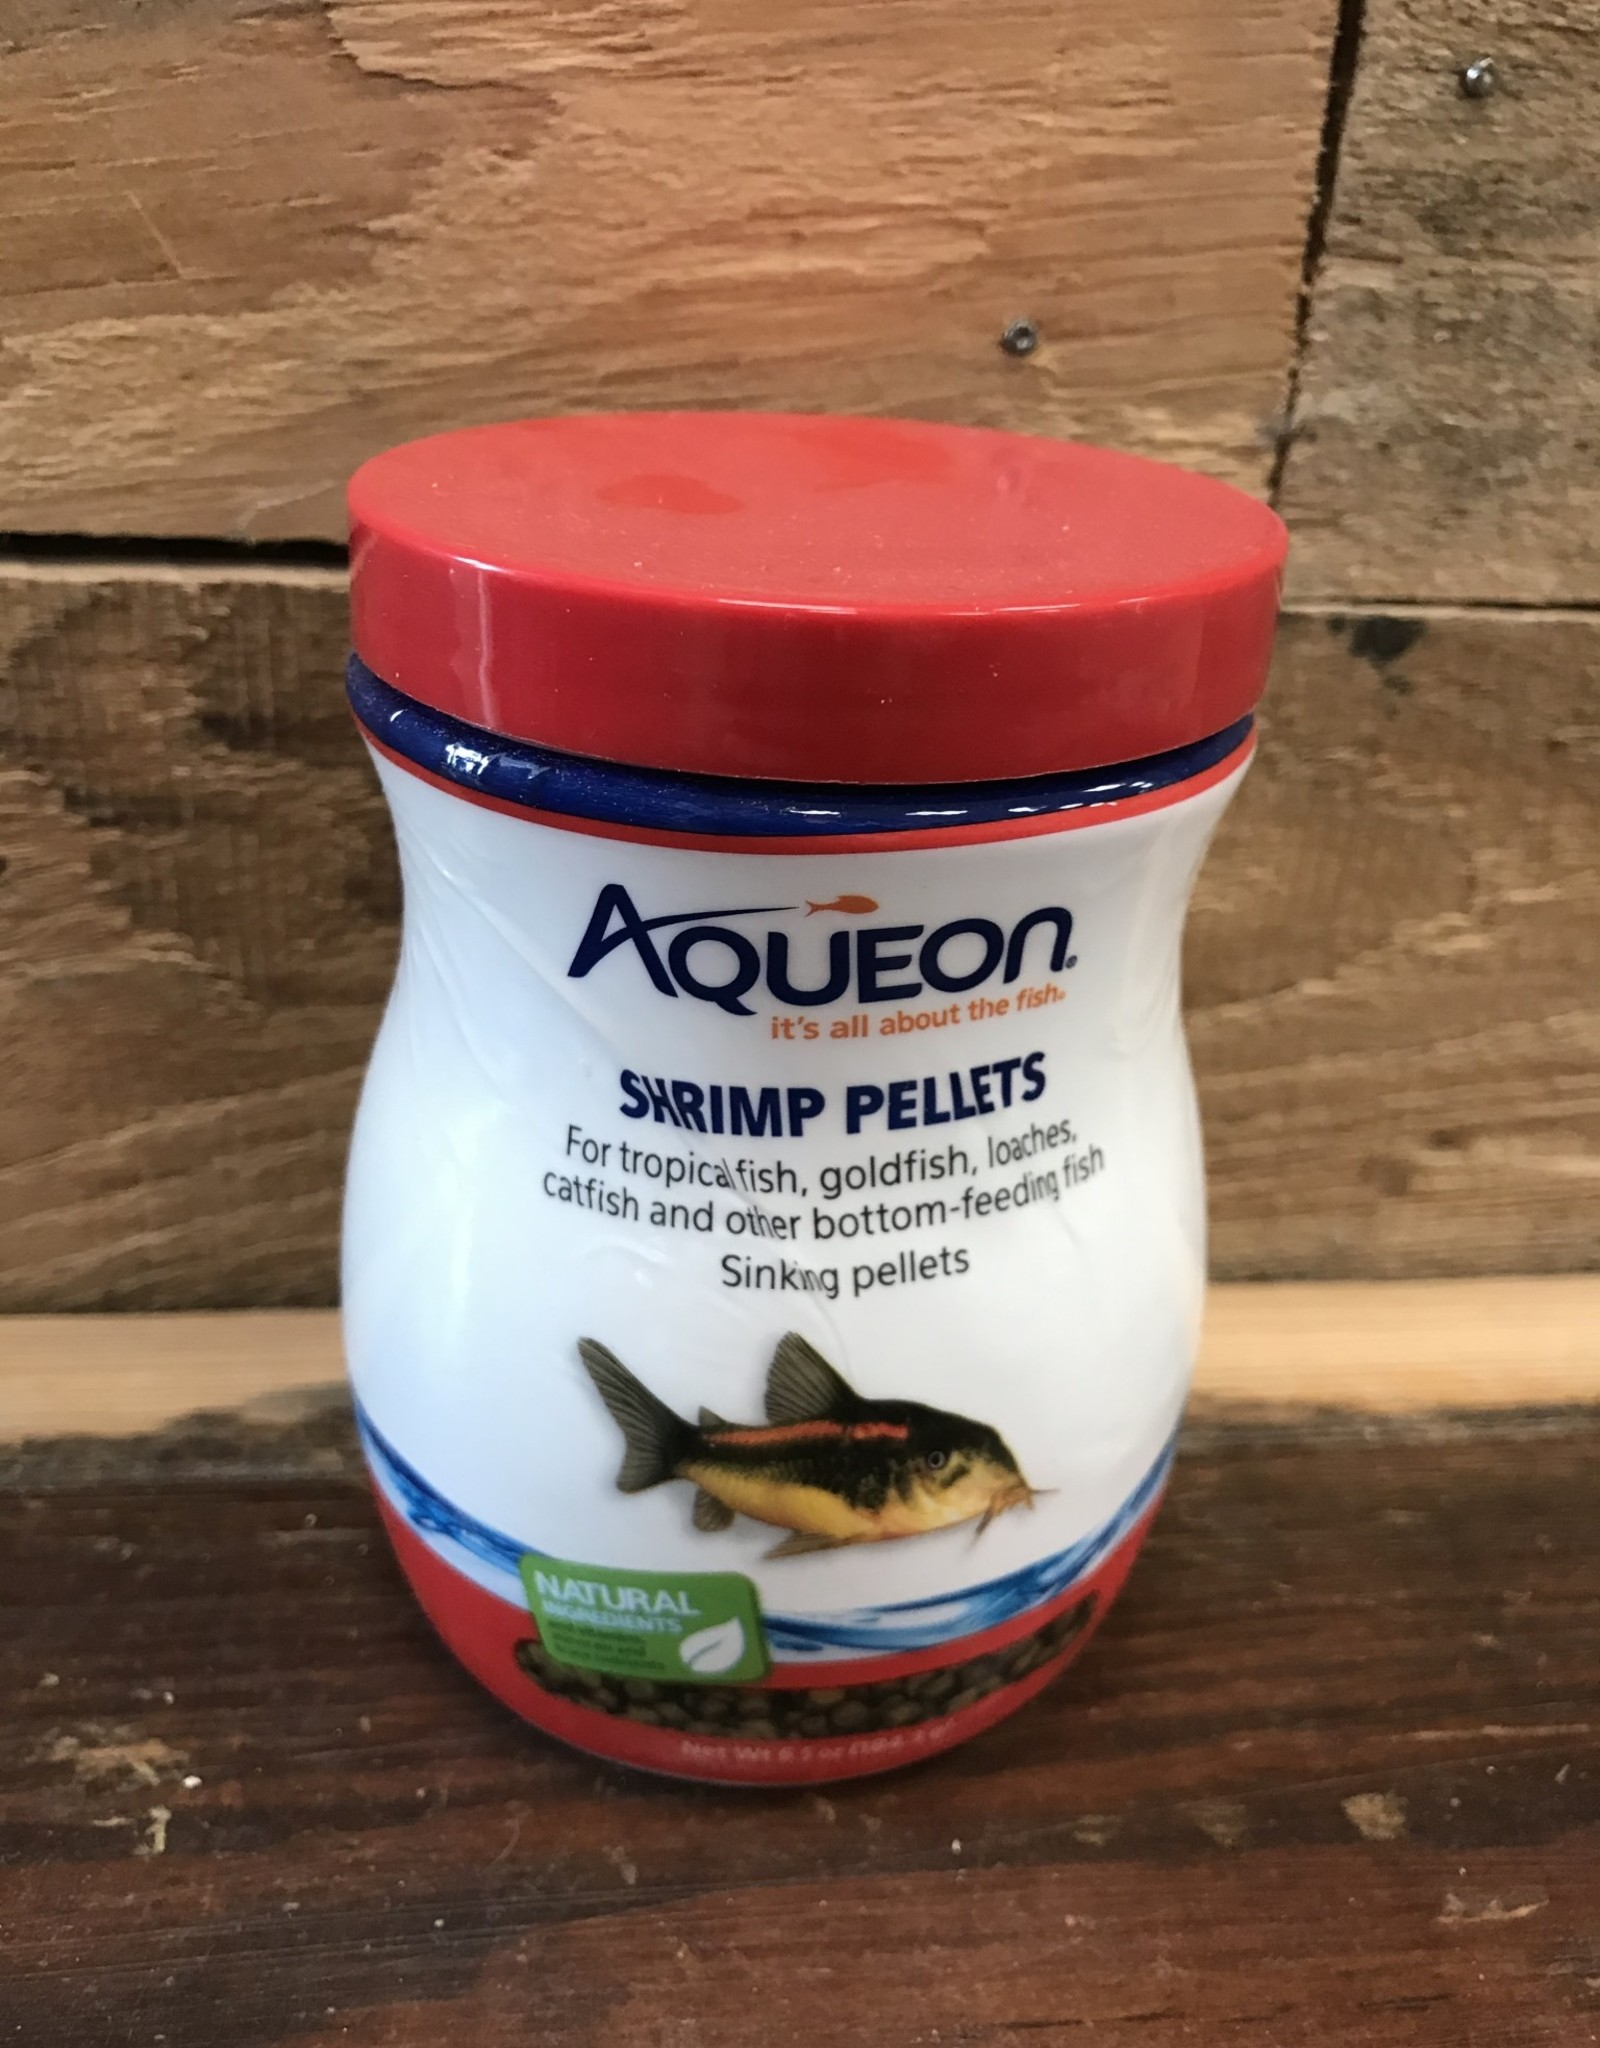 Aqueon Aqueon 6.5 OZ. SHRIMP PELLETS